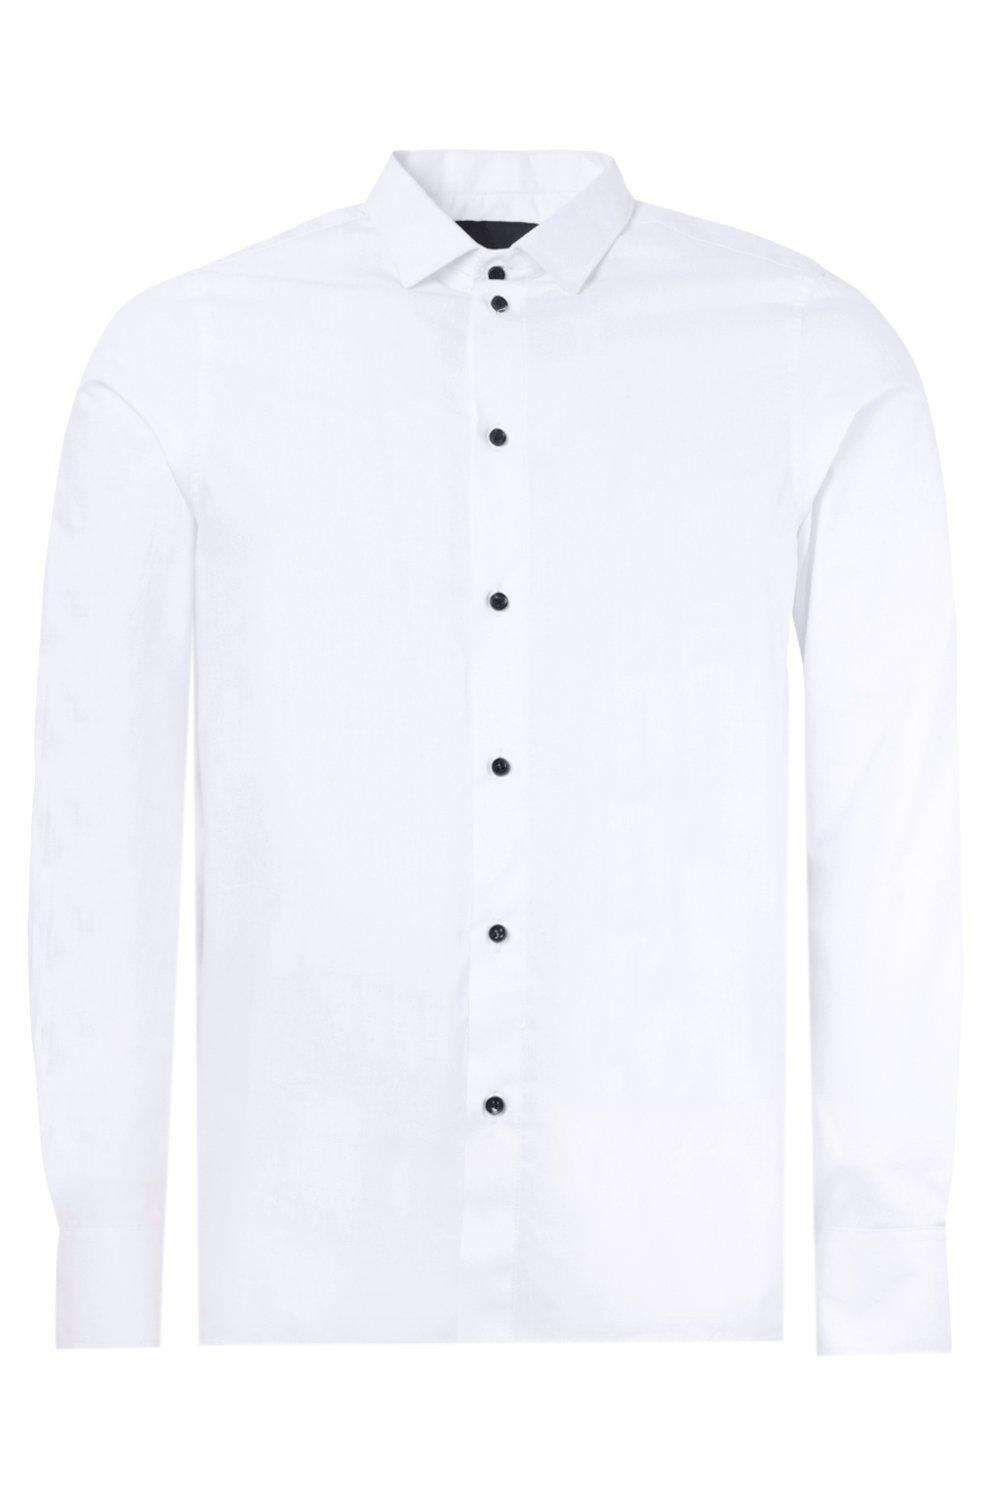 boohooMAN white Slim Fit Long Sleeve Shirt With Contrast Buttons